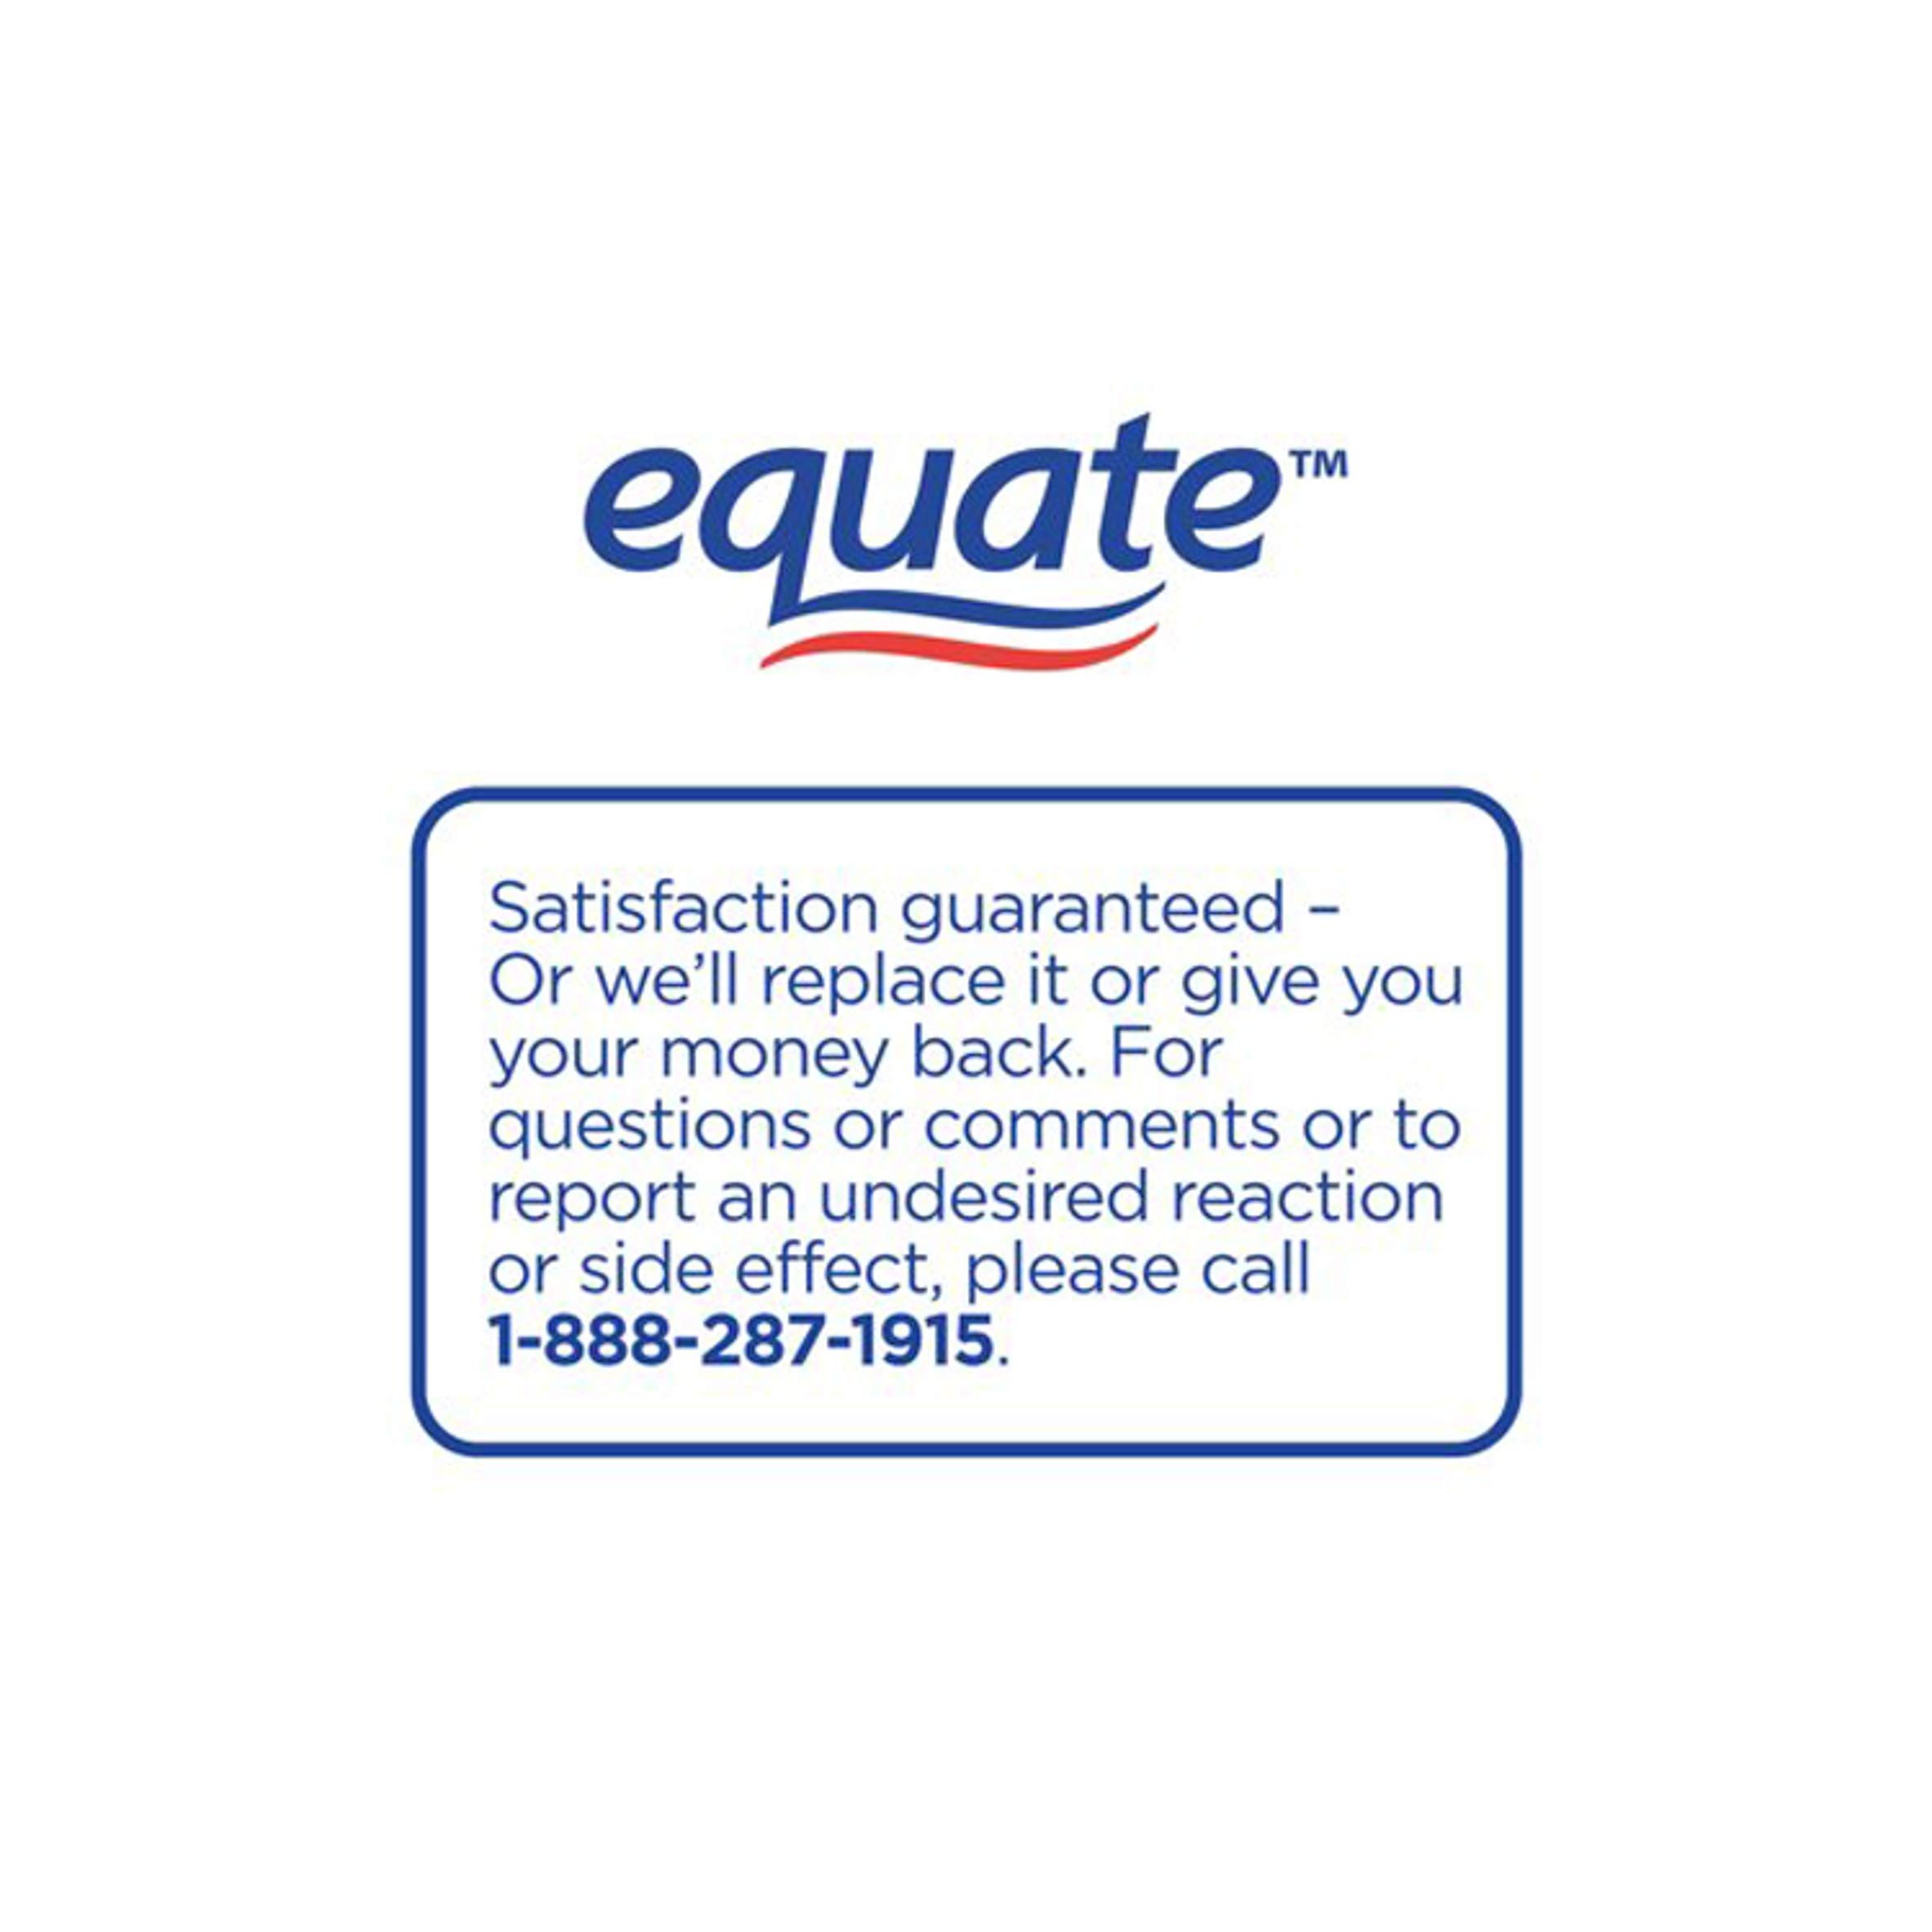 Equate Meal Replacement Shake, Creamy Milk Chocolate, 11 fl oz, 12 Count (Pack of 2) by Equate's (Image #6)